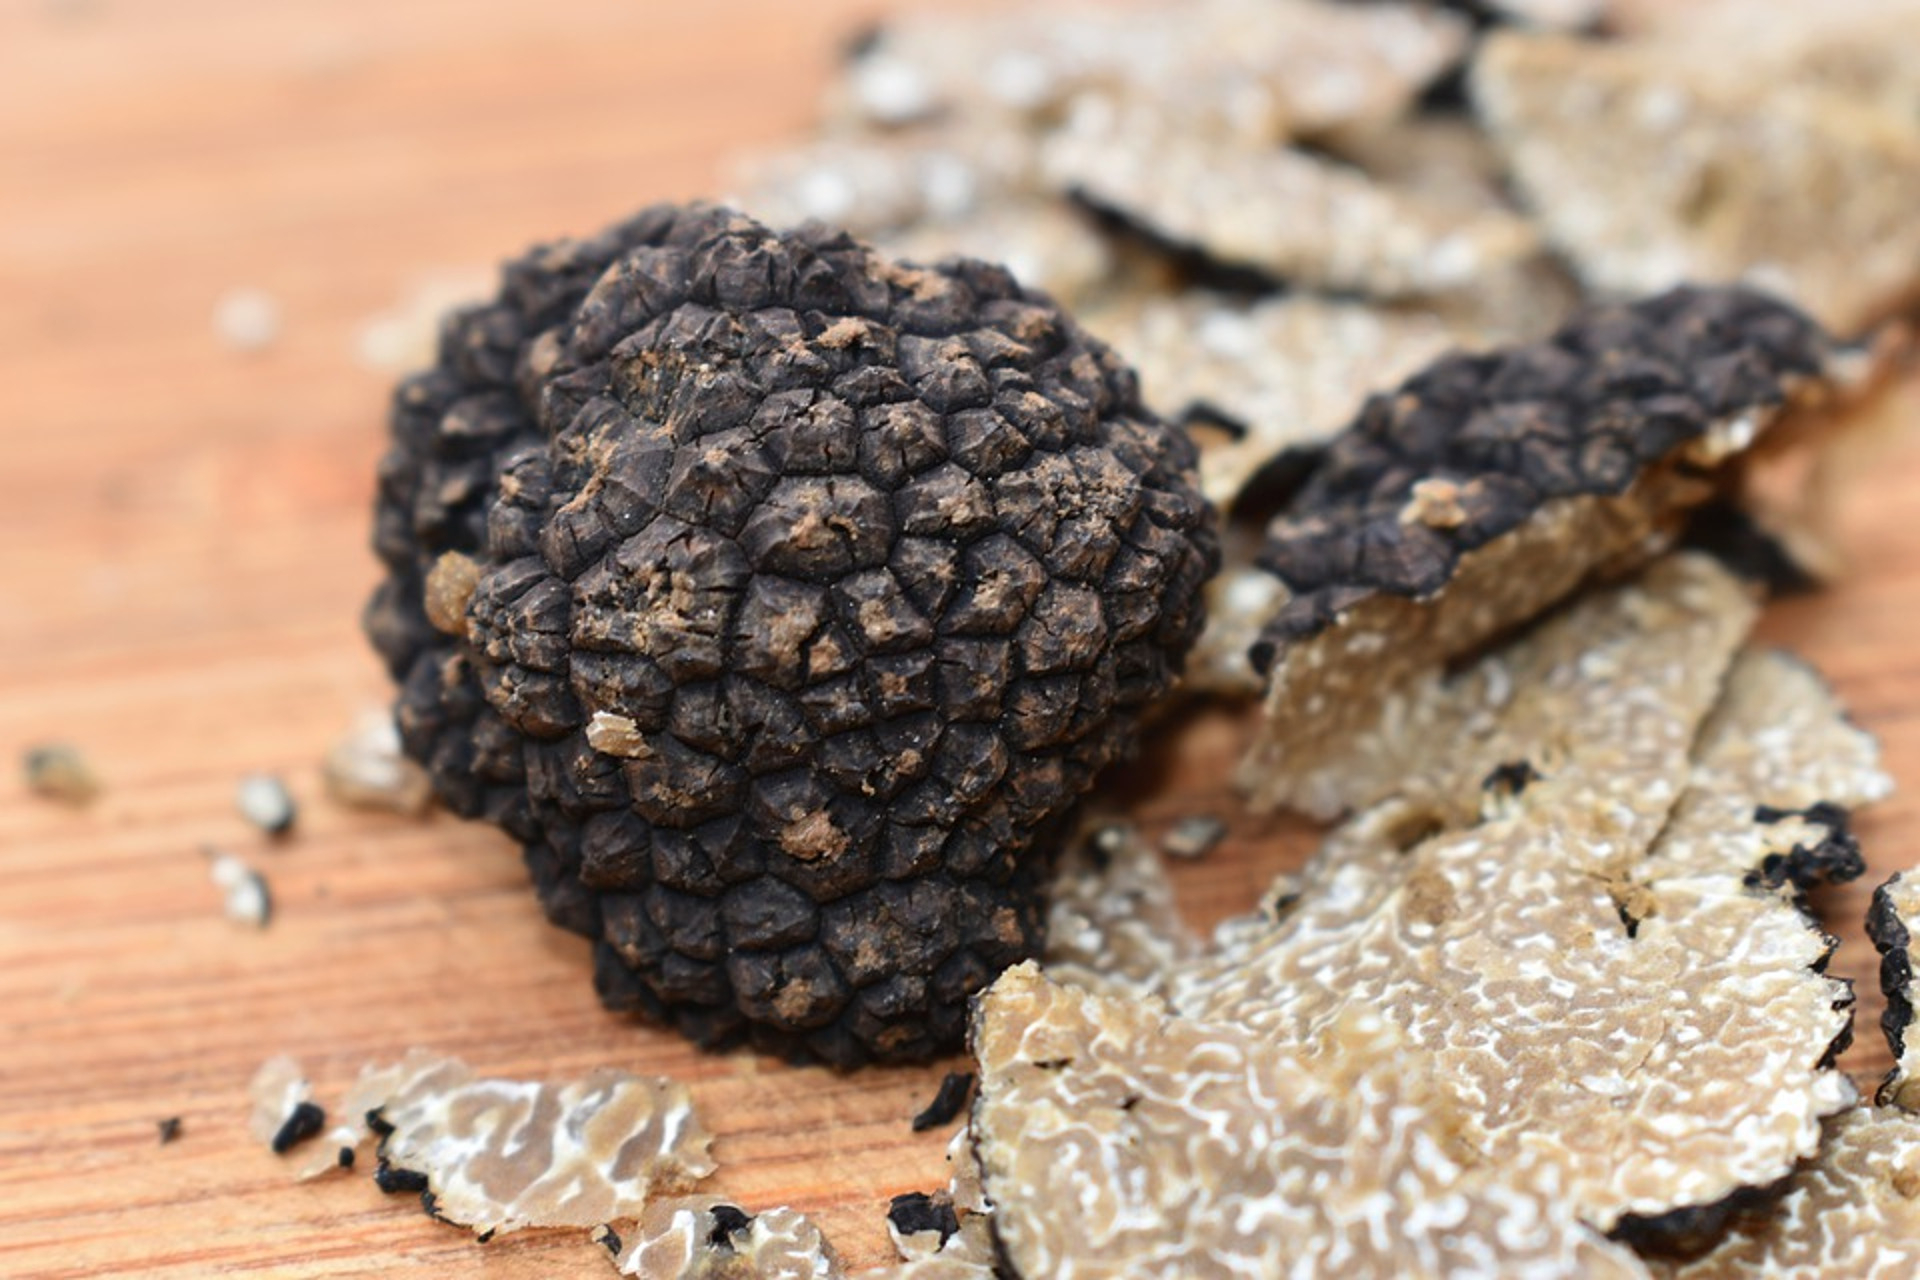 France-provence-avignon-truffle-private tour-tasting